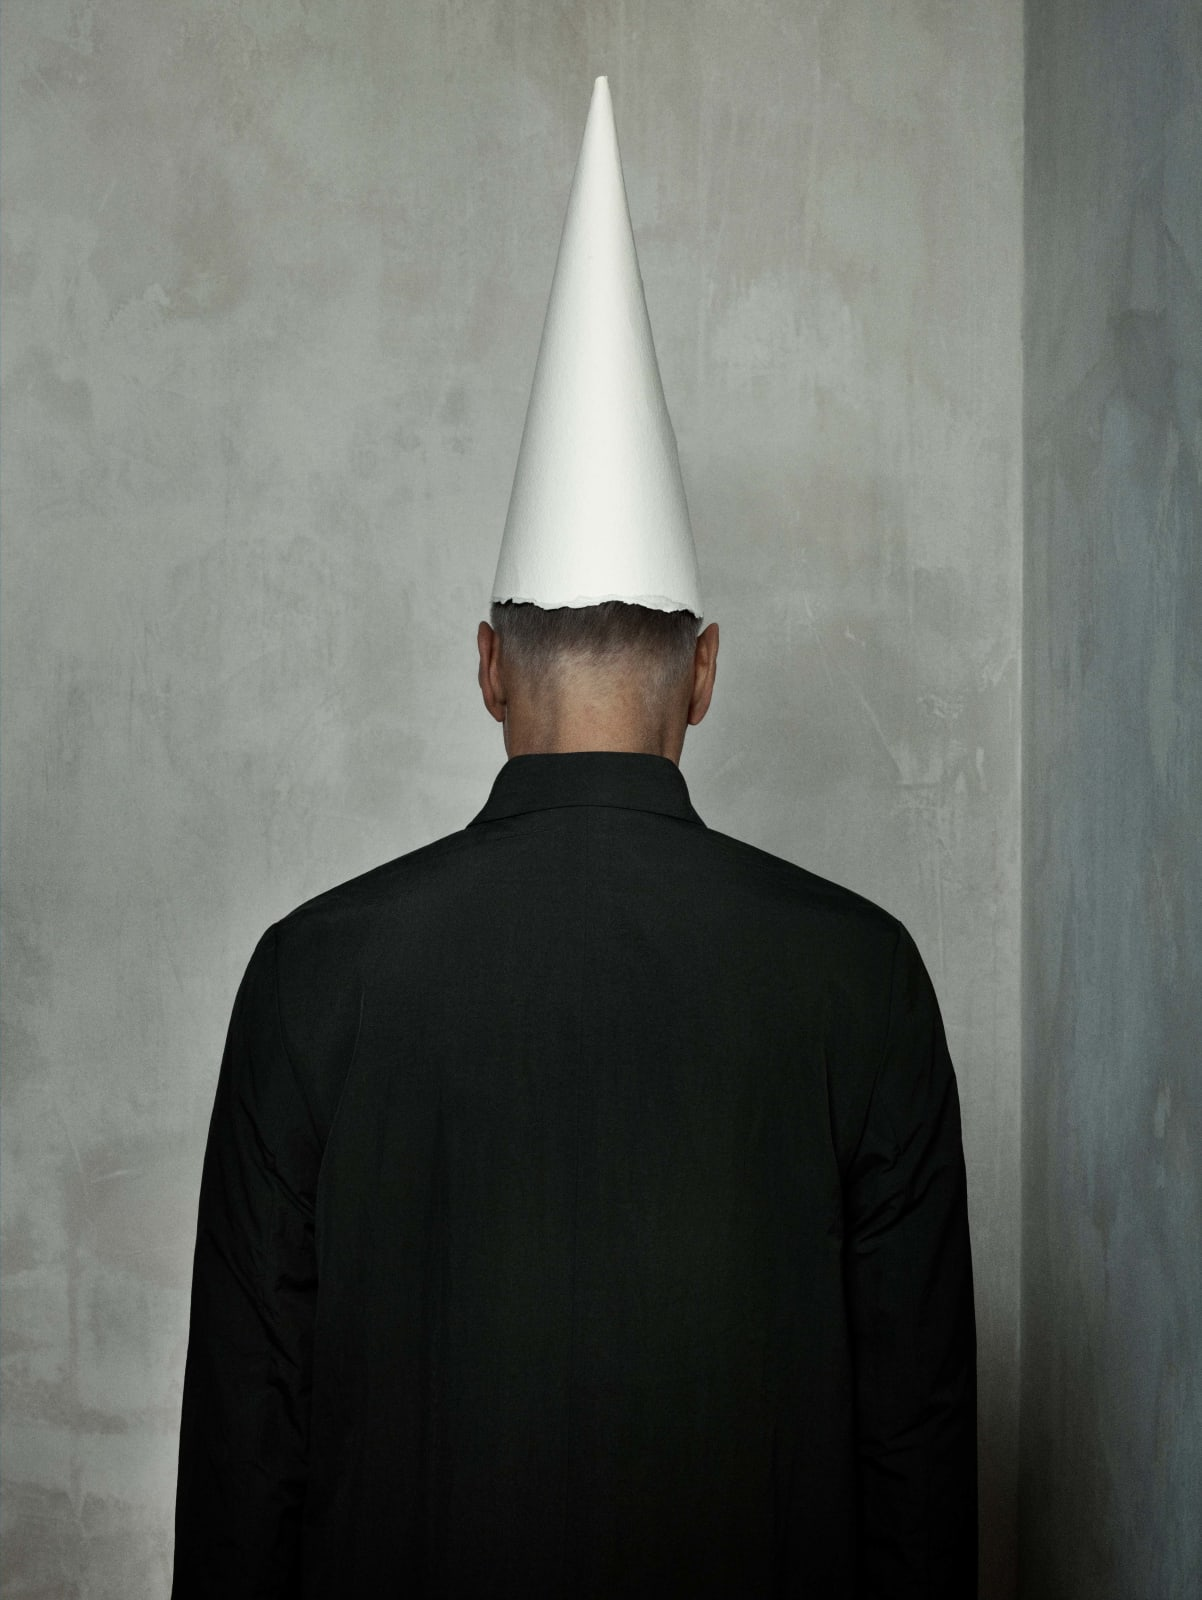 Erwin Olaf self portrait from behind, artist wearing dunce cap and looking at wall, by Erwin Olaf